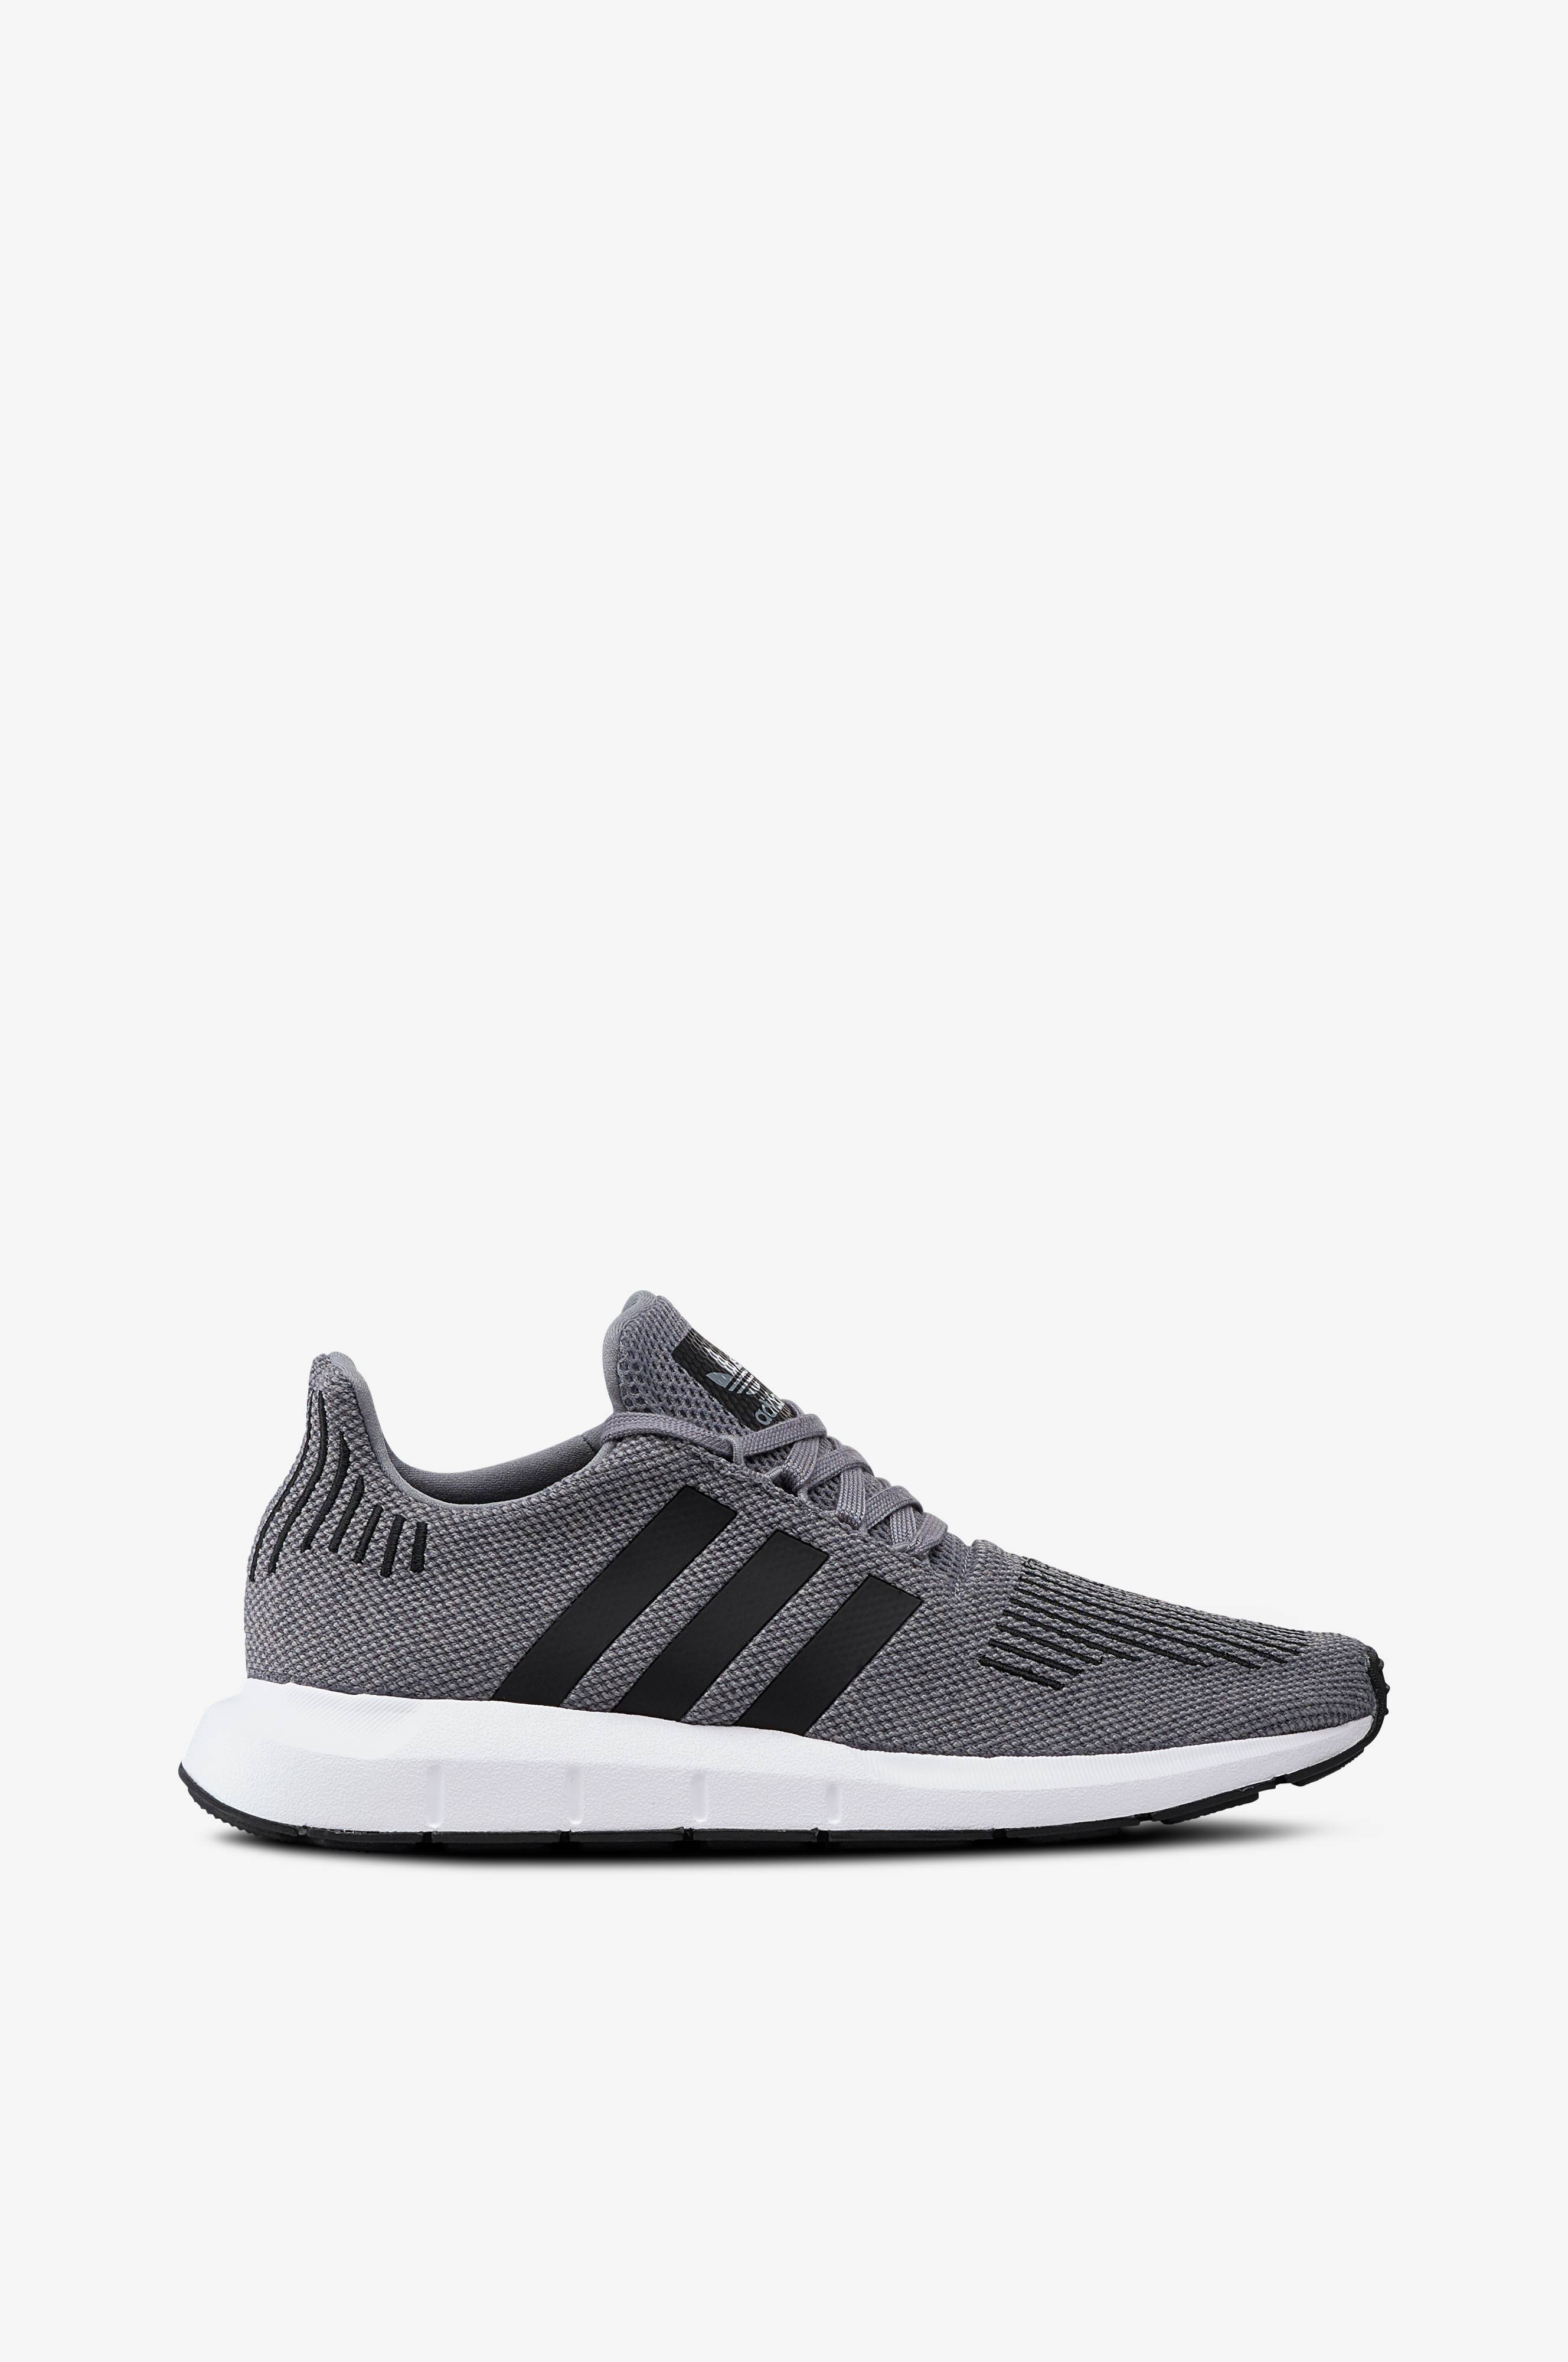 adidas Synthetic Originals Swift Run Casual Sneakers From